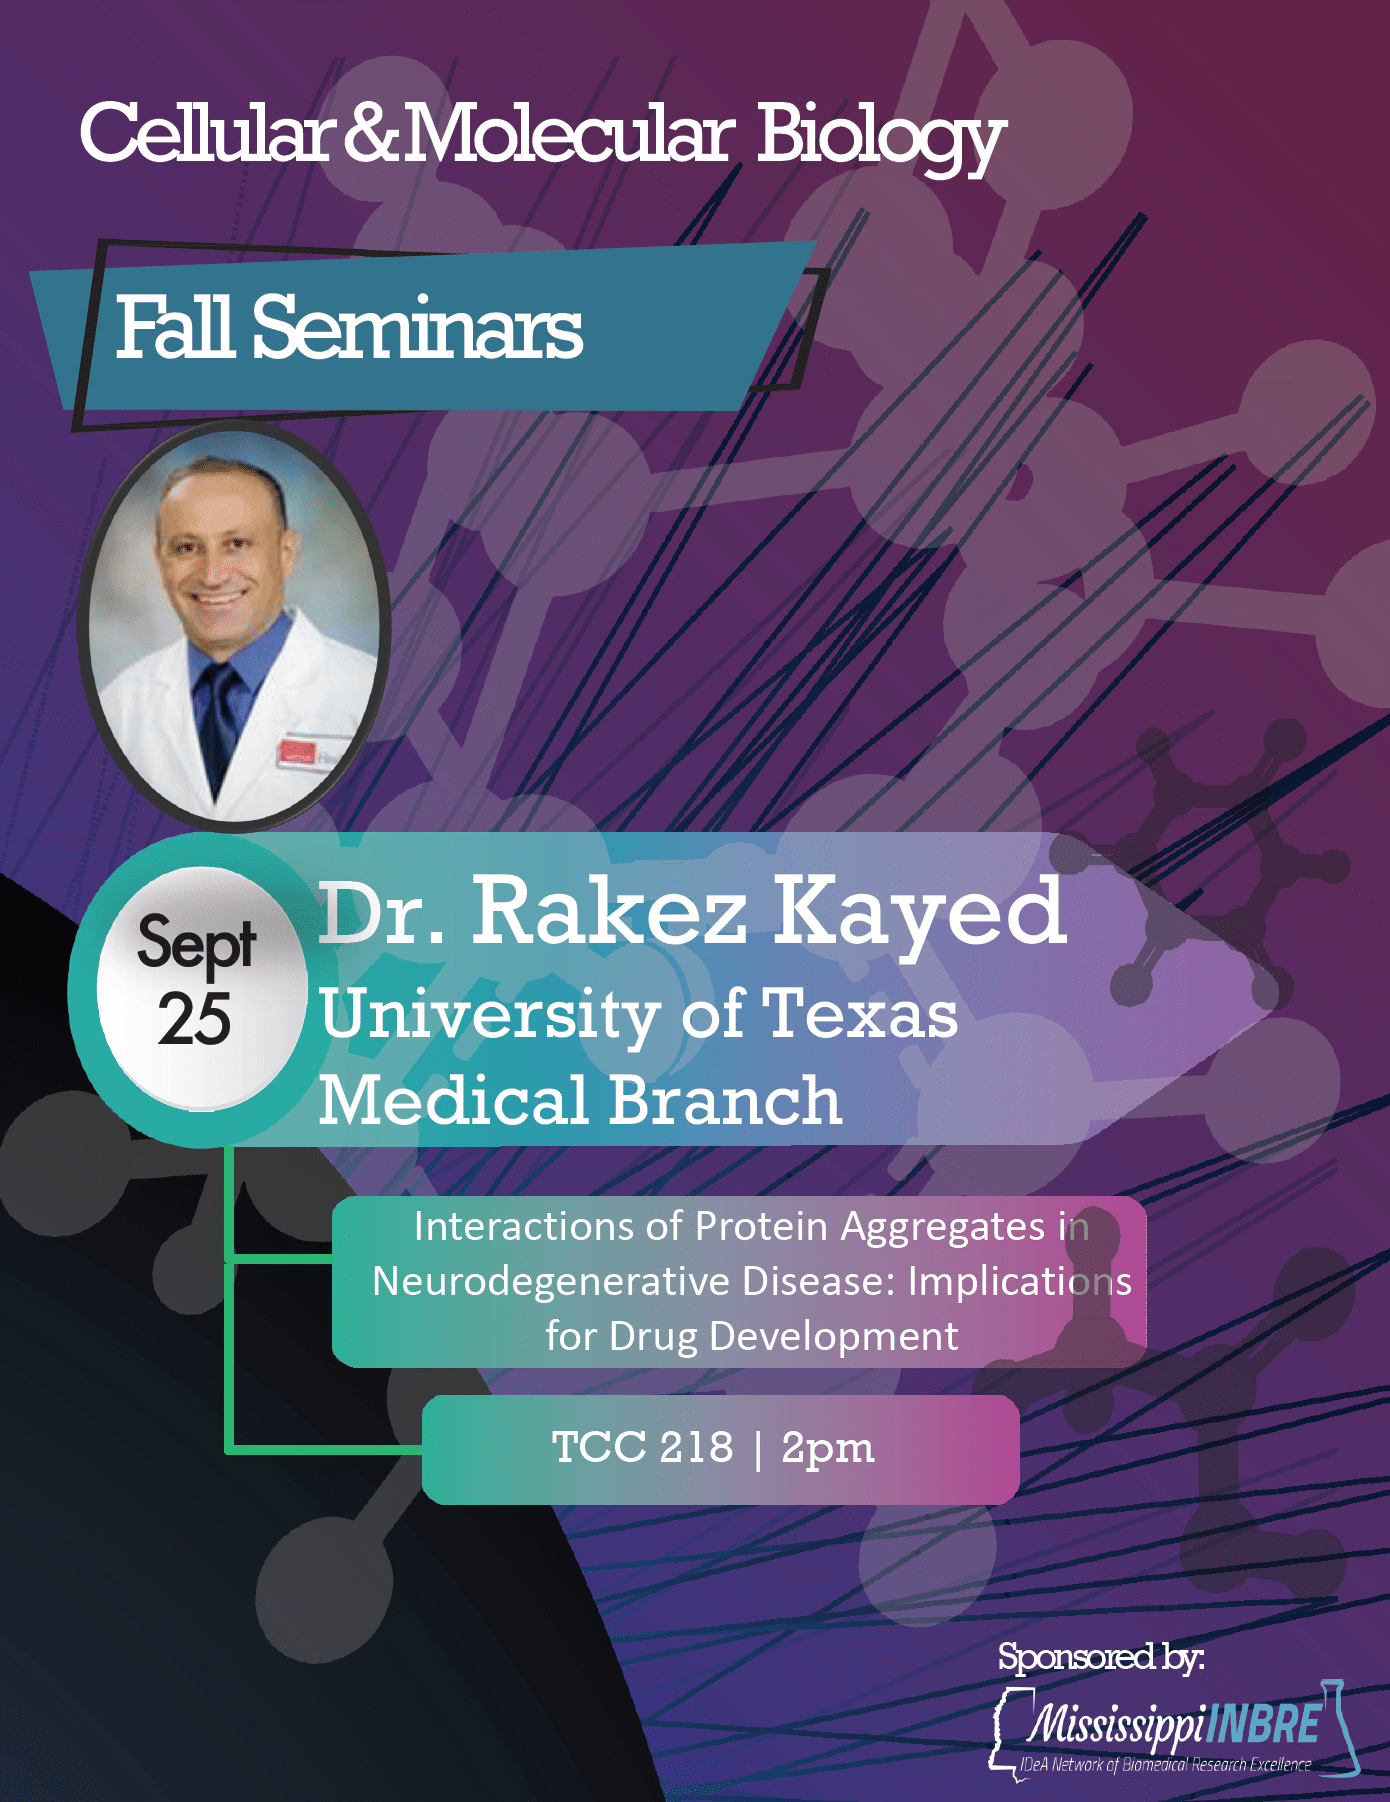 Dr. Rakez Kayed visits USM for CMB Seminar Series